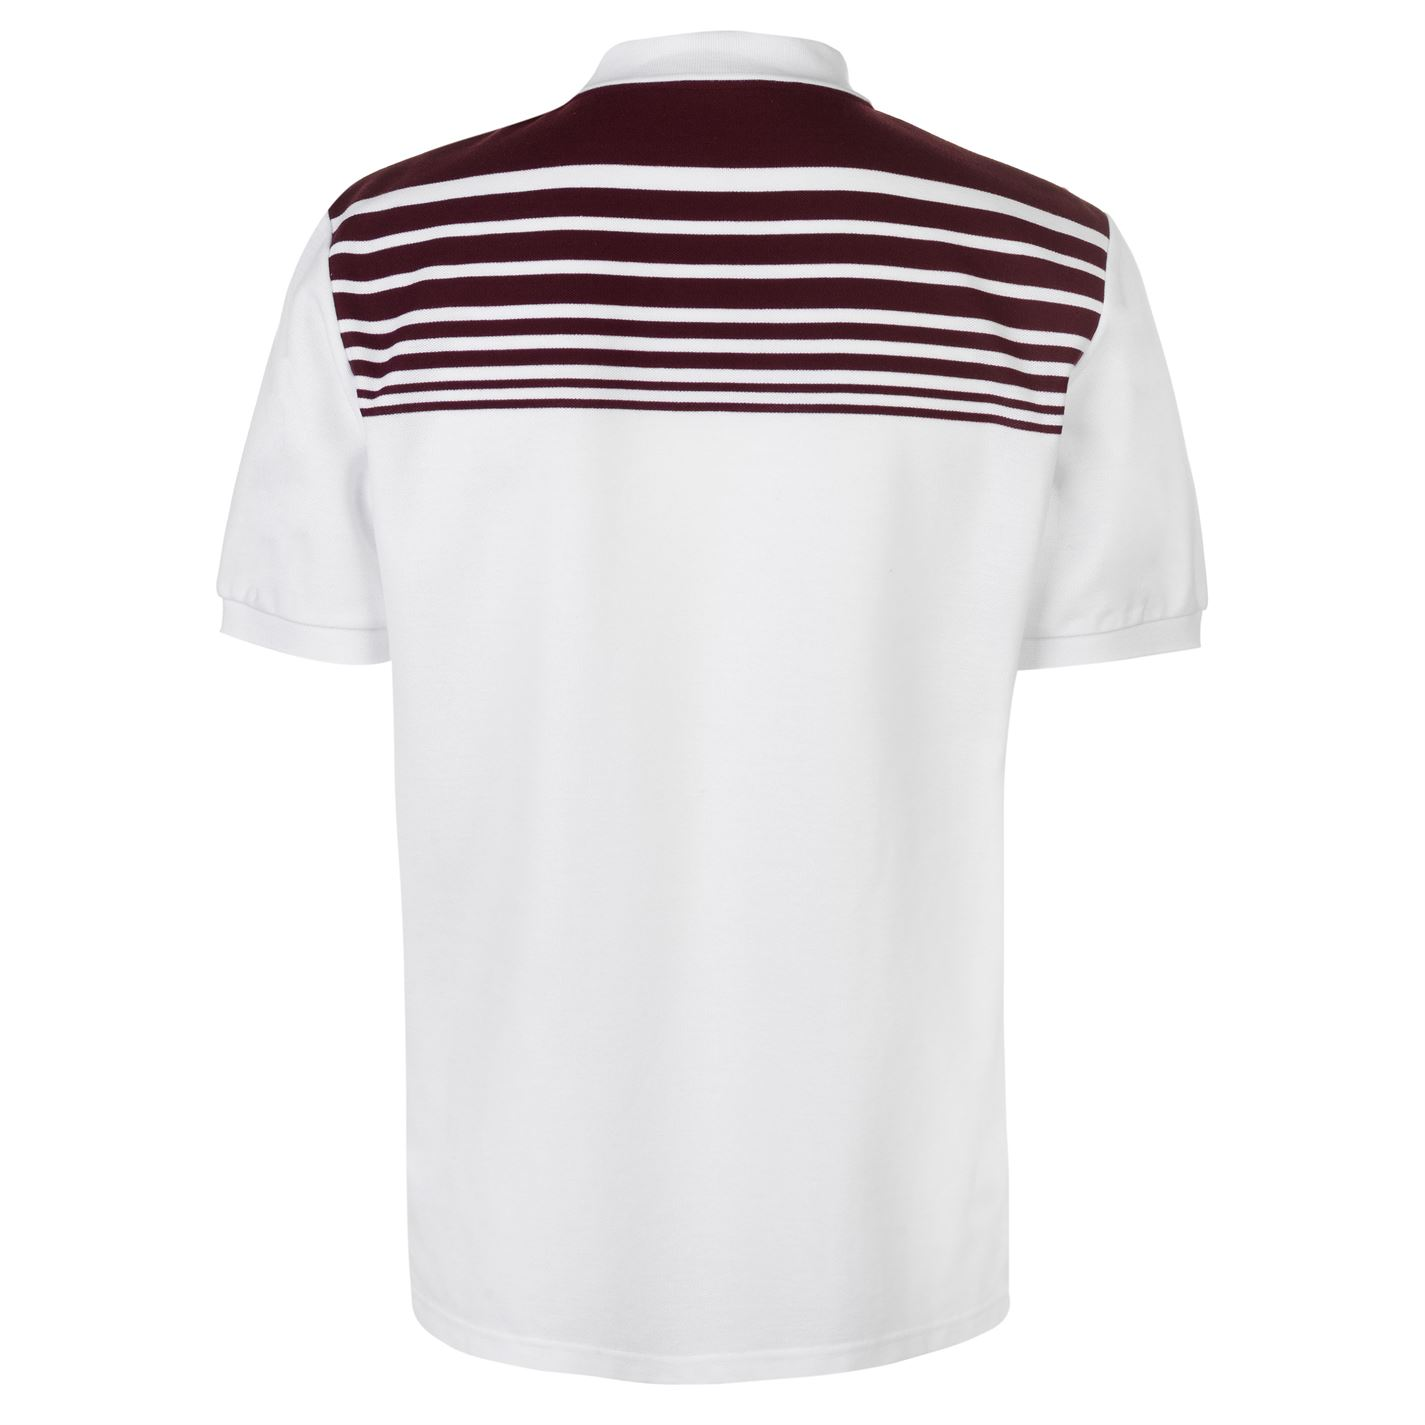 Lonsdale-Mens-Stripe-Polo-Shirt-Classic-Fit-Tee-Top-Short-Sleeve-Button-Placket thumbnail 17